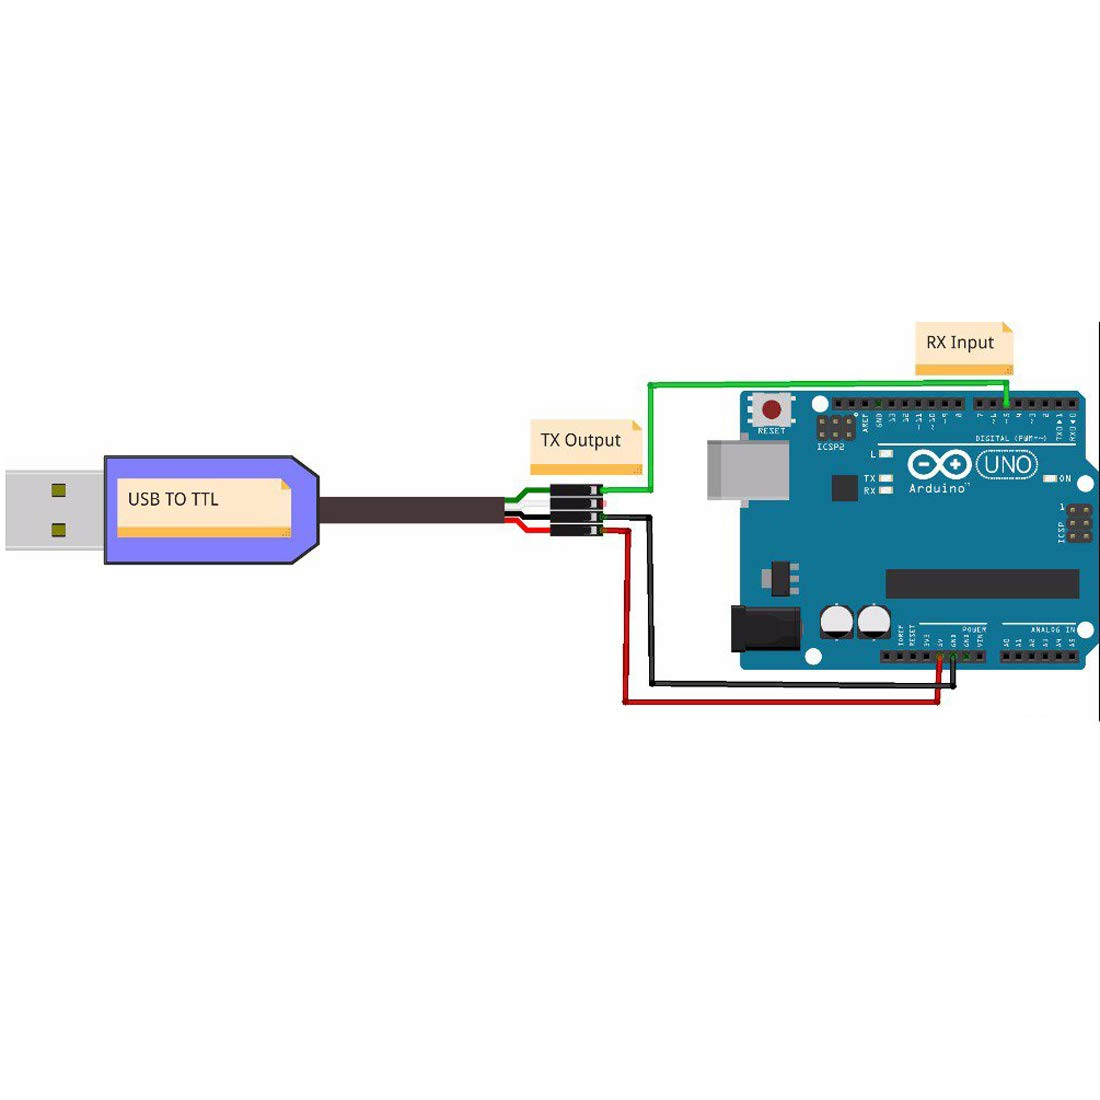 5pcs USB to Serial USB to TTL CH340 Download Module with STC Microcontroller Download Adapter with Dupont Wires